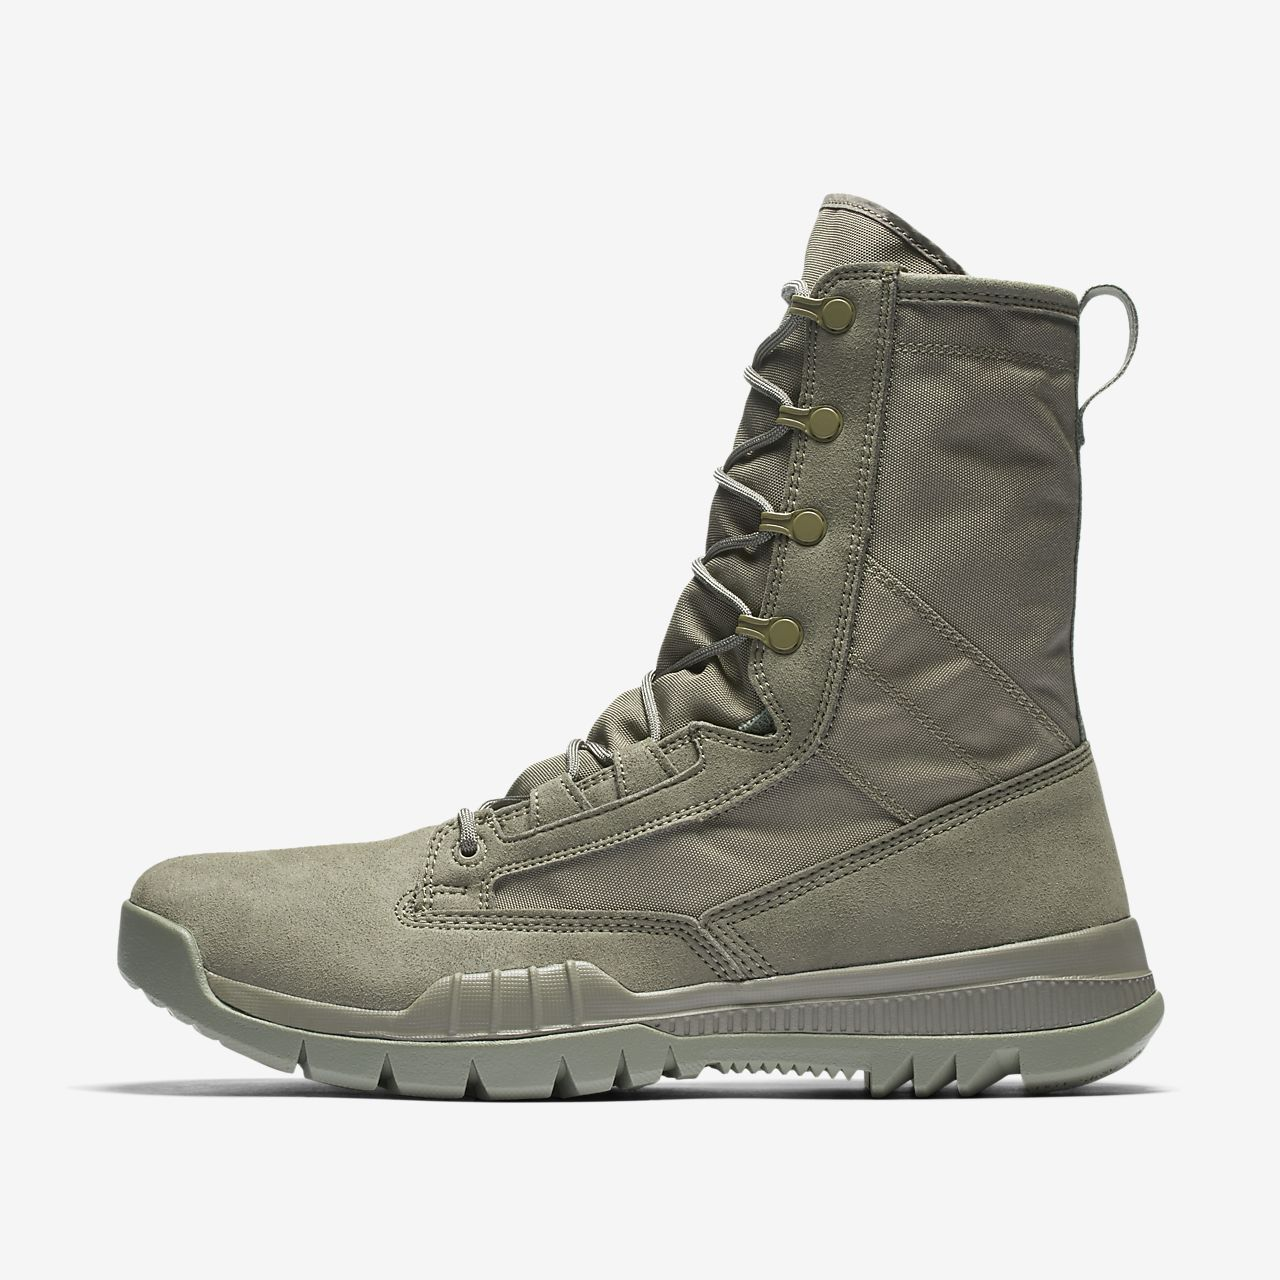 ... Botte Nike SFB Field 20,5 cm mixte